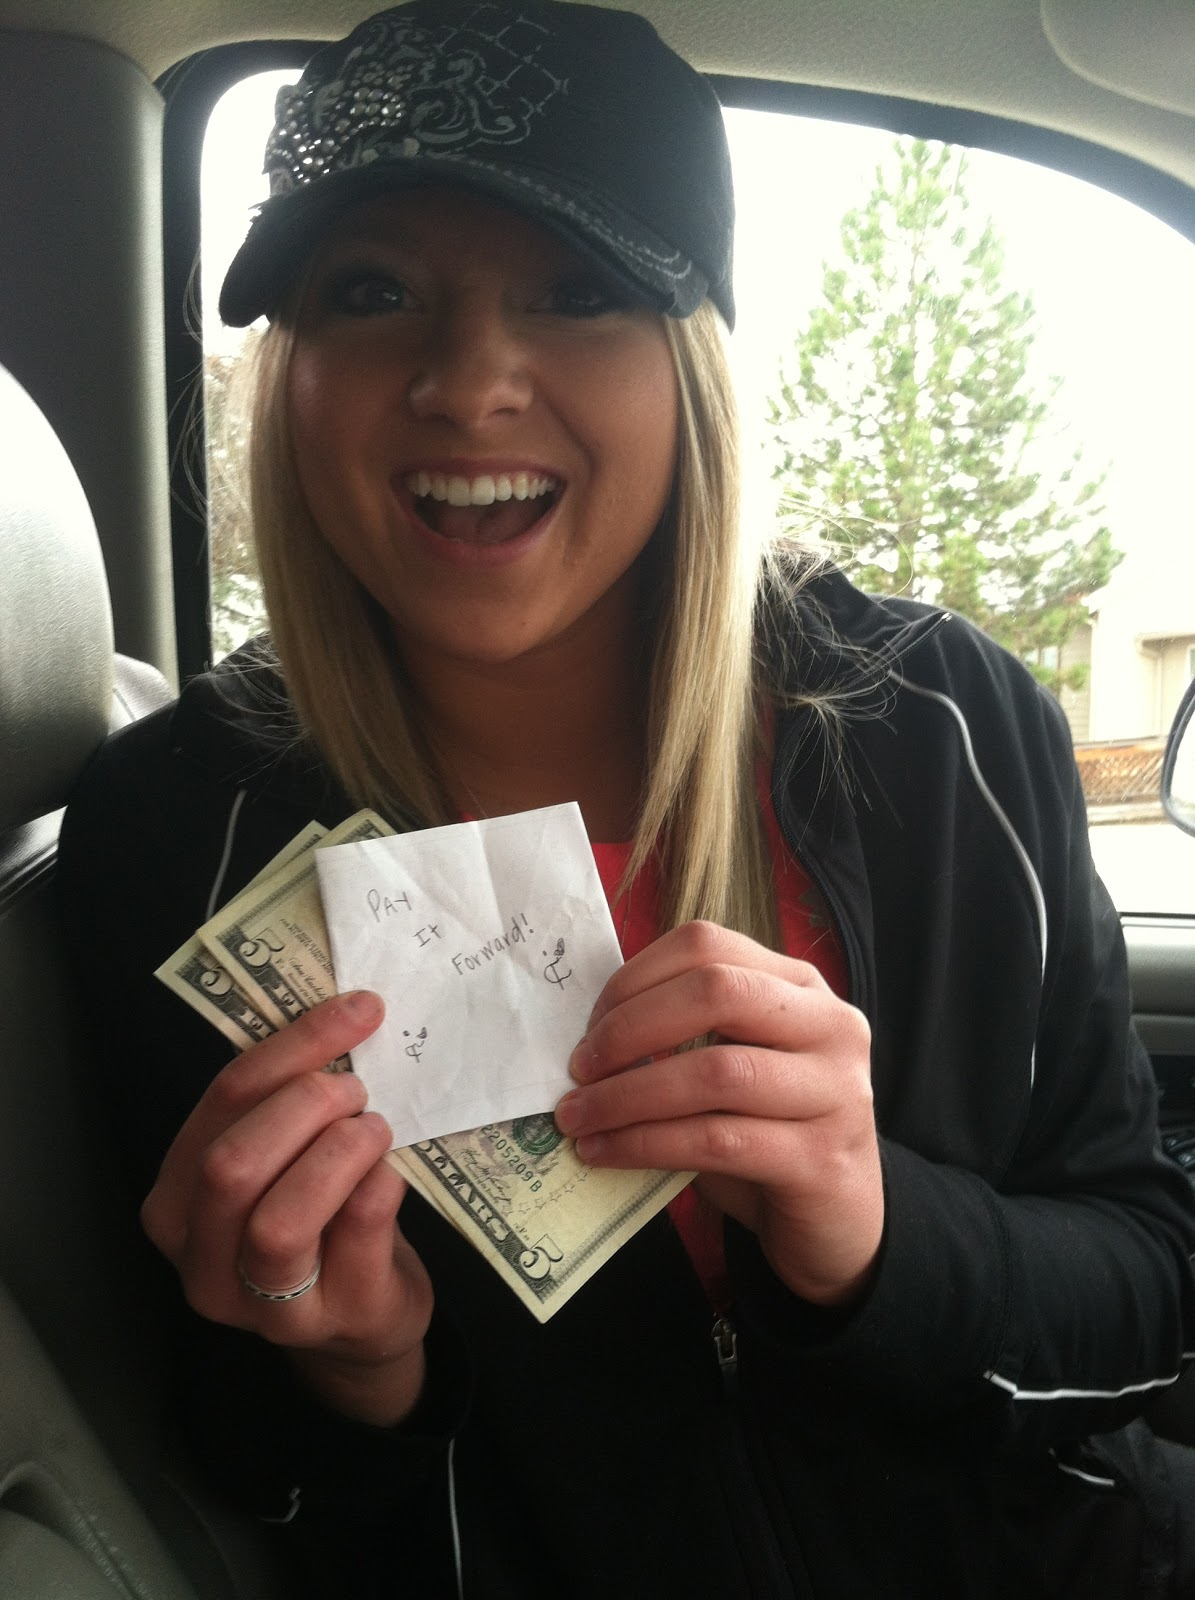 One of my Pay it Forward Friday acts. I put $10 on a random person's windshield